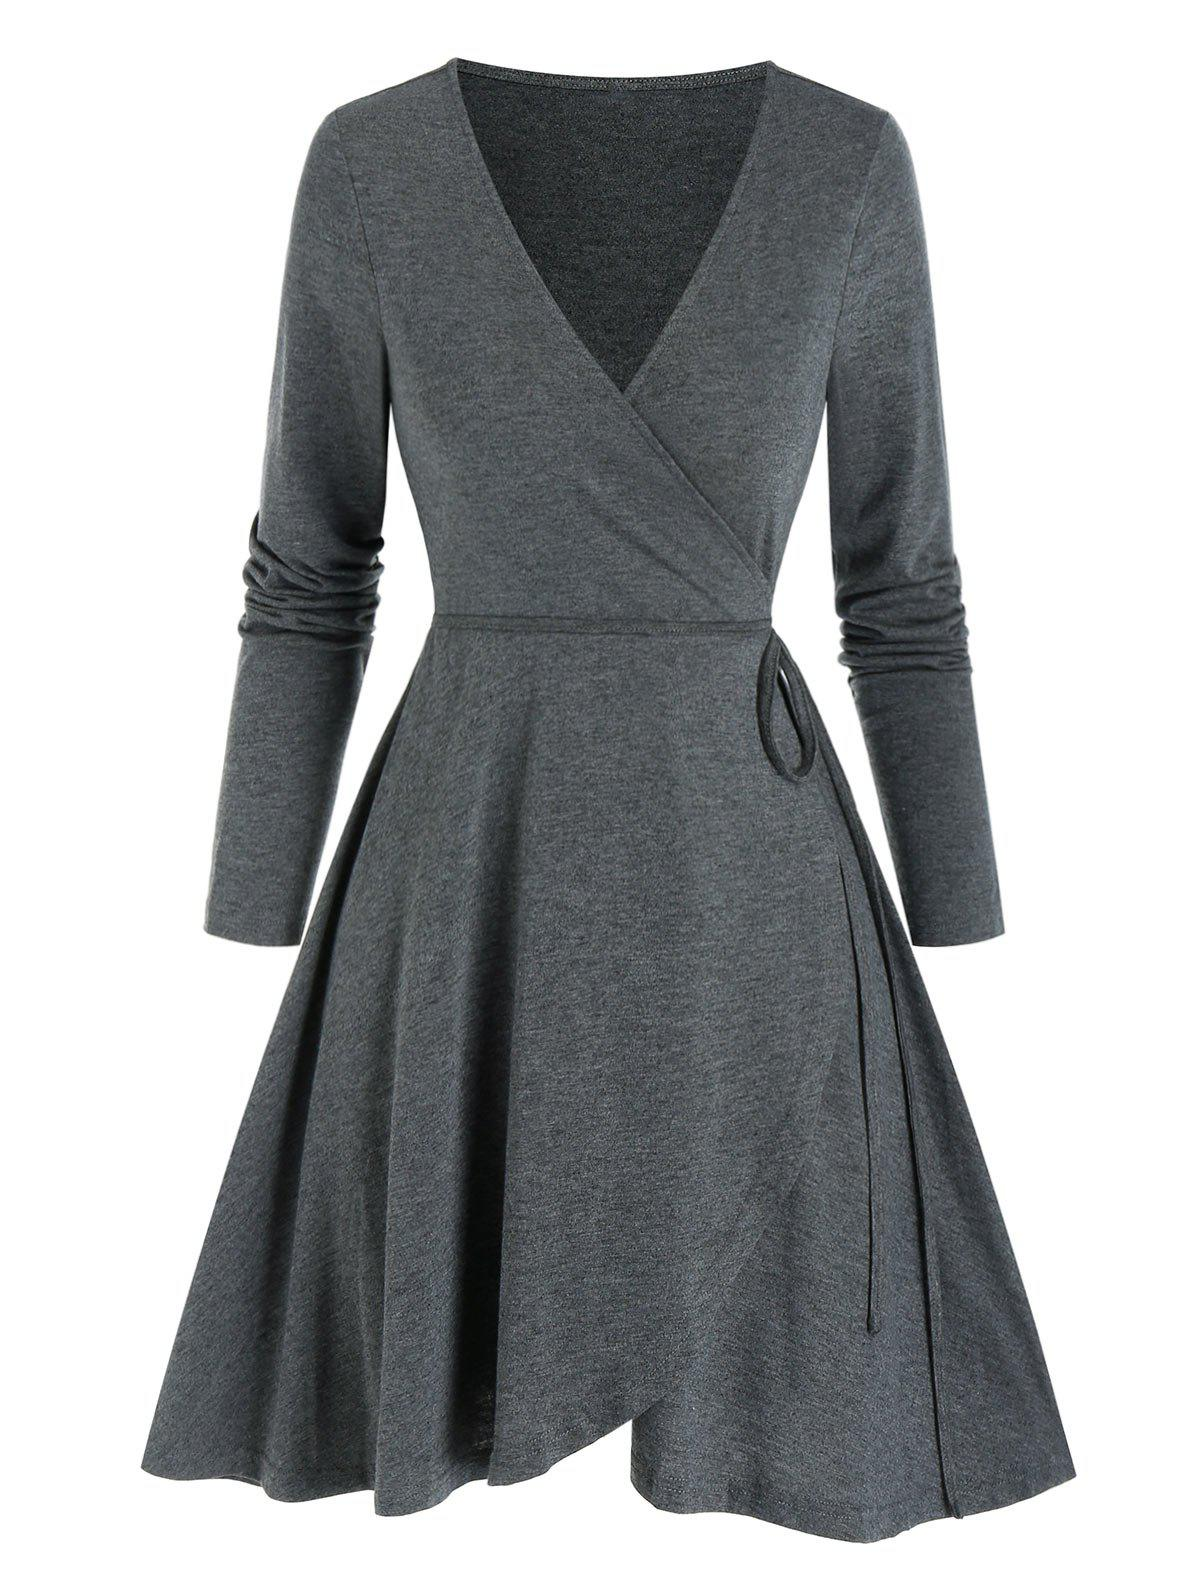 Long Sleeve Heathered Mini Wrap Dress - ASH GRAY S